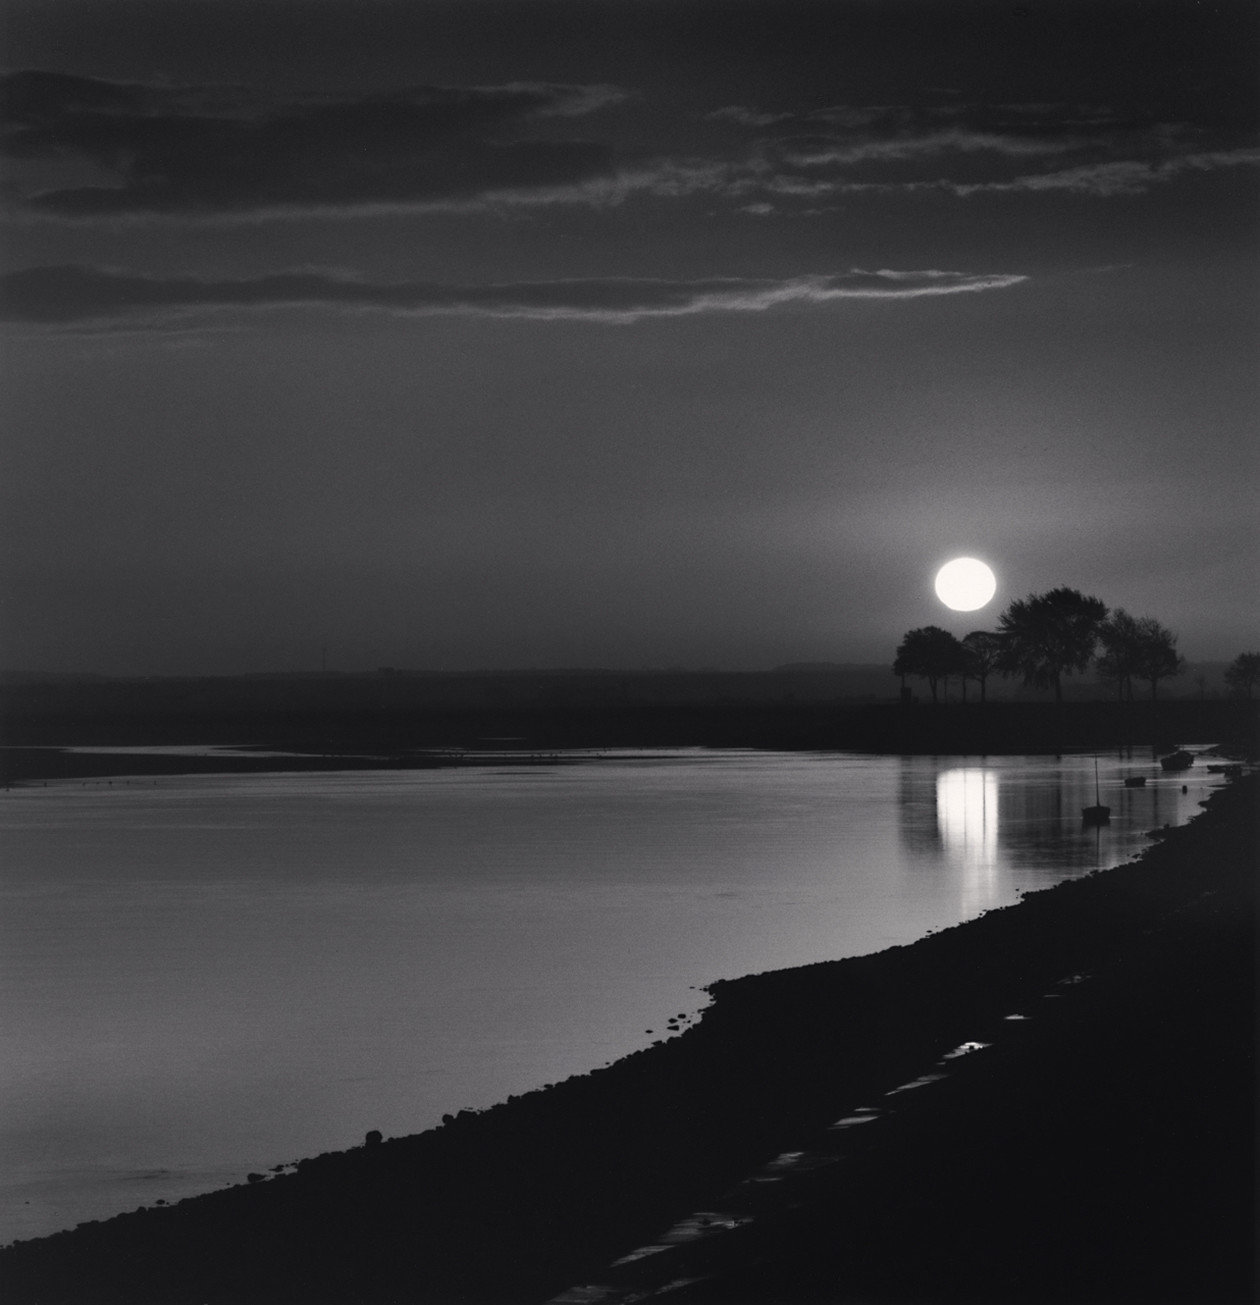 Sunrise, Saint Valery sur Somme, Picardy (2009) by Michael Kenna